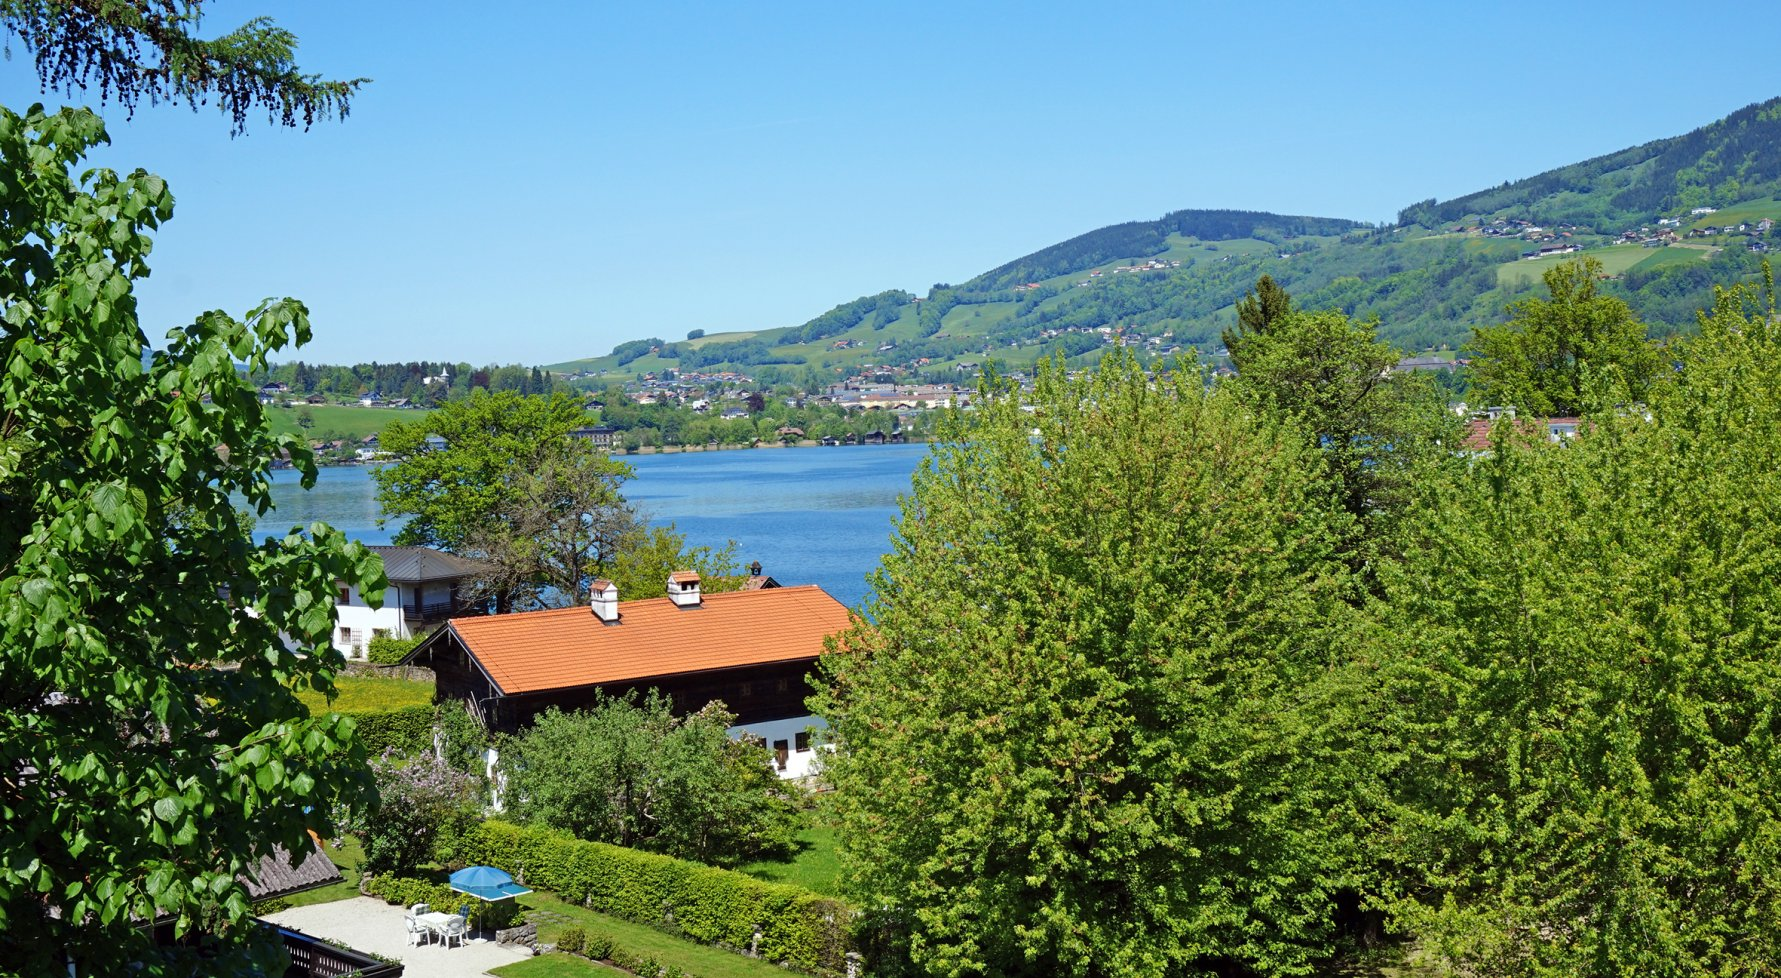 Property in 5310 Mondsee: Your lake retreat - Boathouse, annex and a perfect villa with lake view! - picture 1